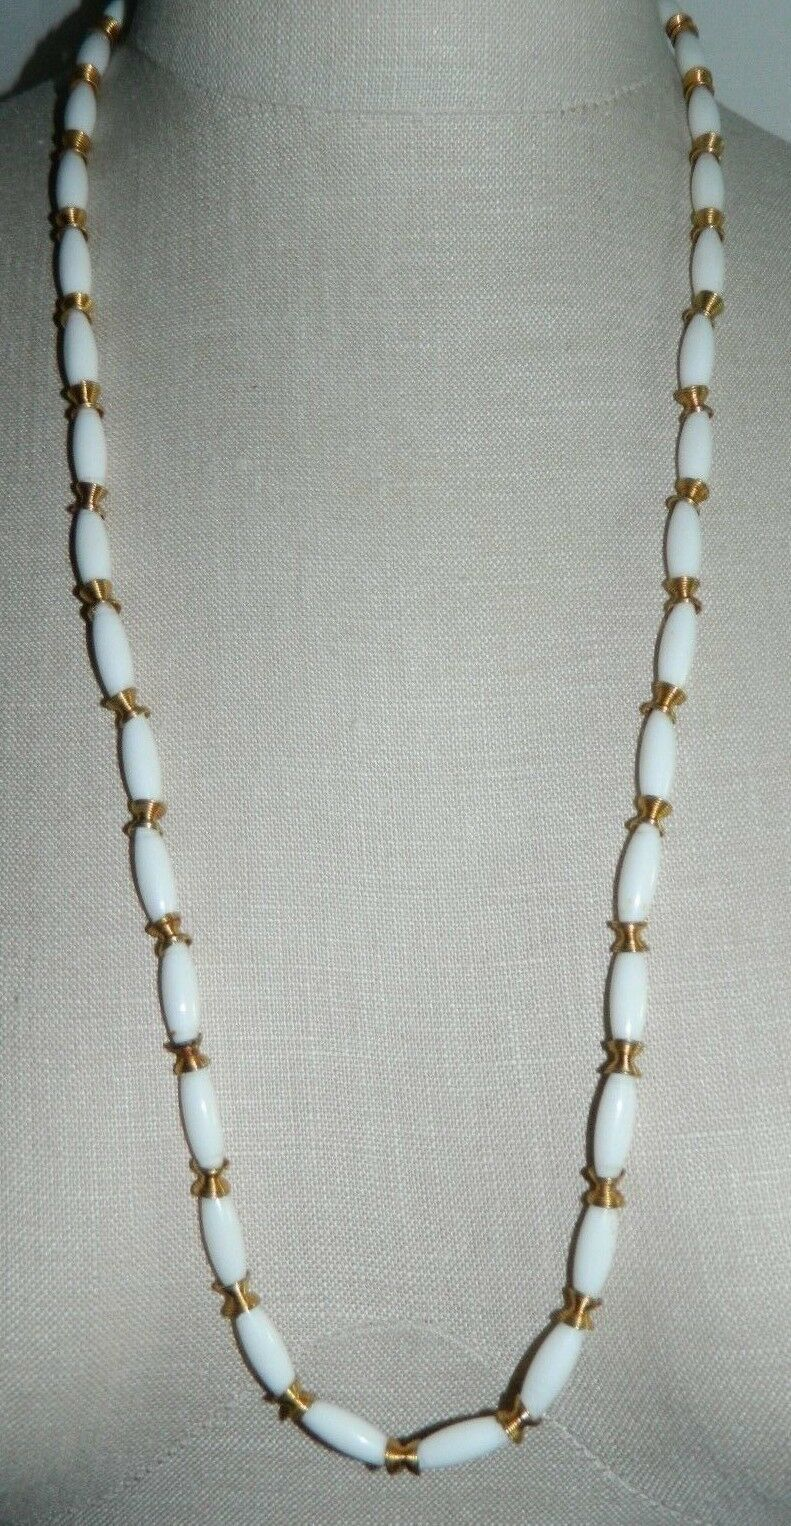 Primary image for VTG CROWN TRIFARI White Lucite Plastic Gold Coil Beaded Necklace 30""